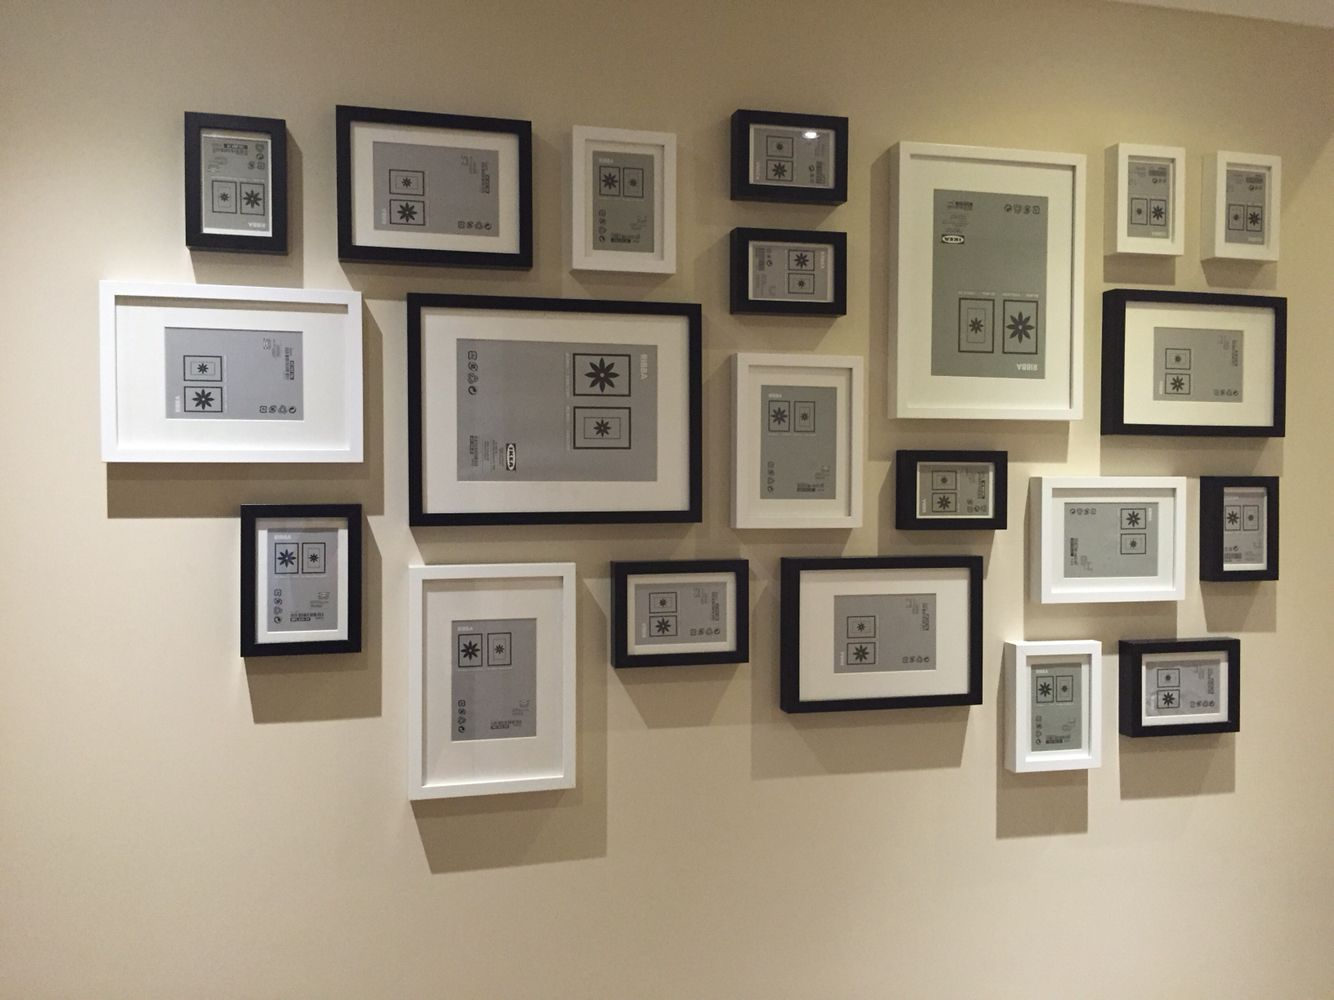 ikea ribba frames layout black and white | gallery wall in 2018